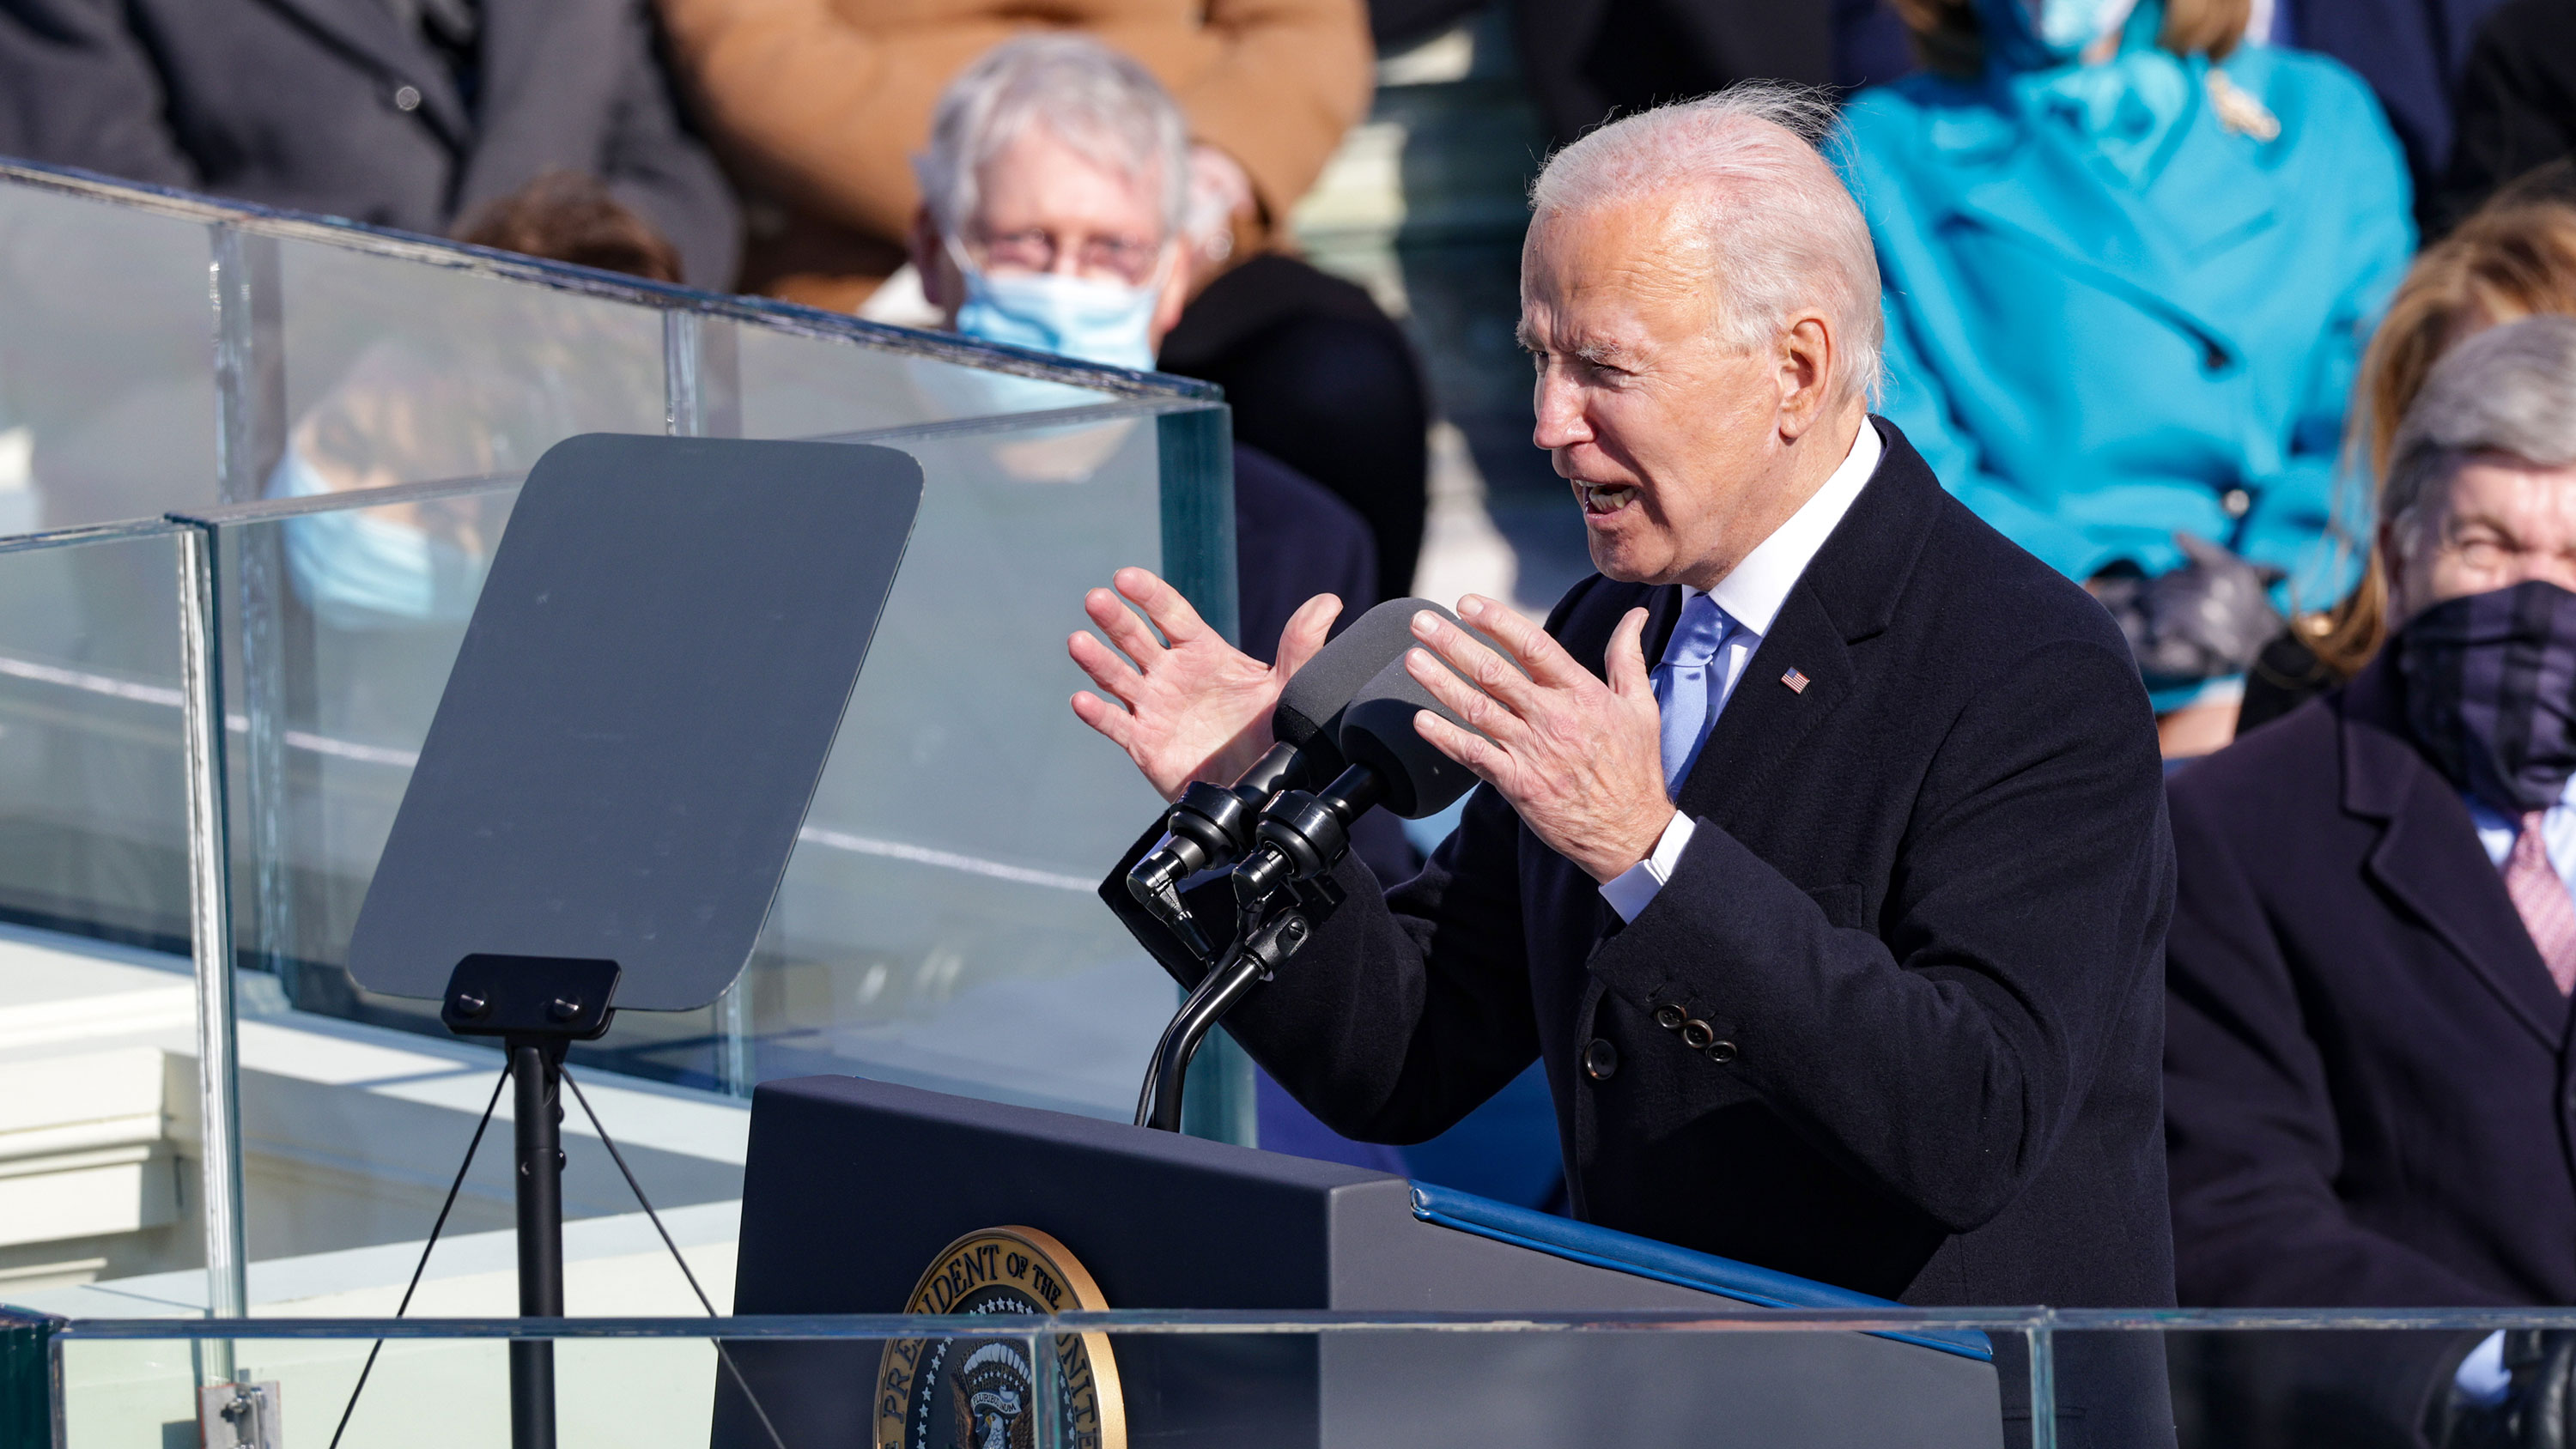 Biden administration faces mounting pressure to address SolarWinds breach